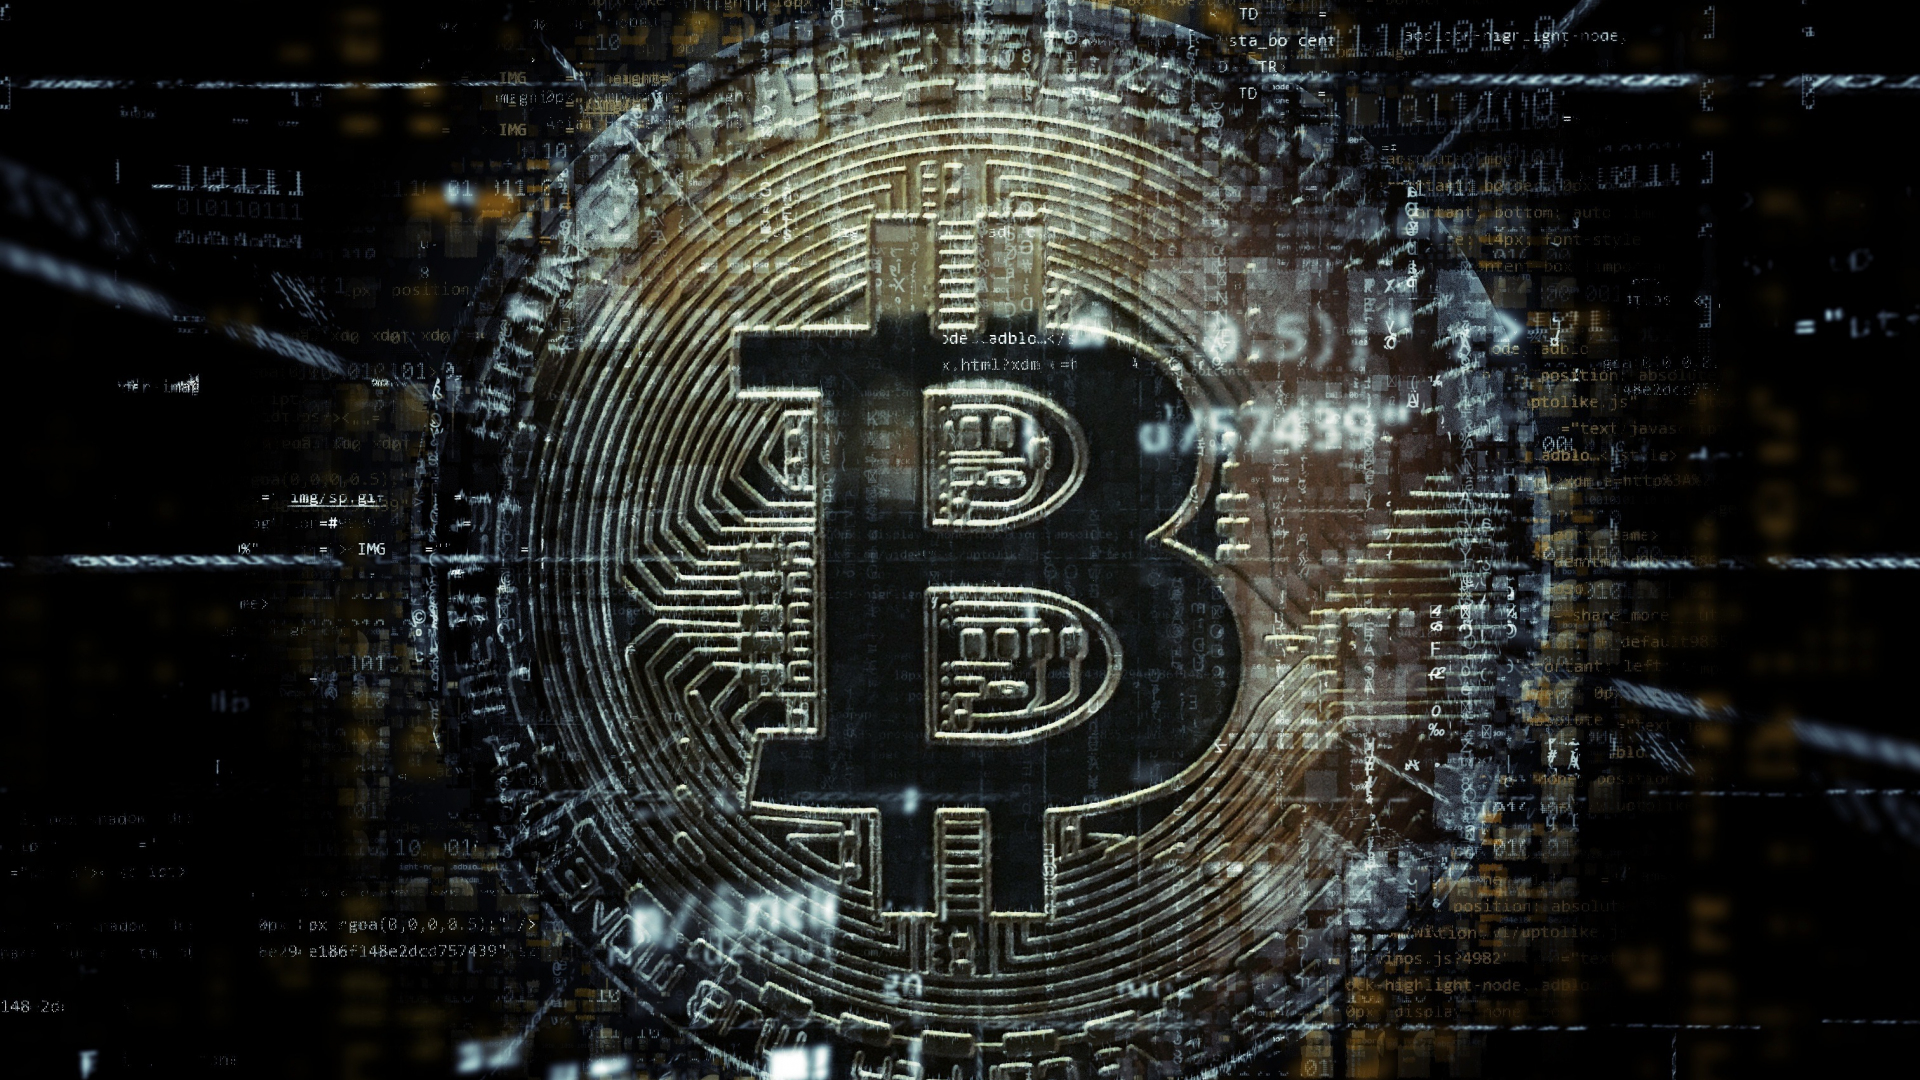 All Cars Symbols Wallpaper Download 1920x1080 Wallpaper Bitcoin Cryptocurrency